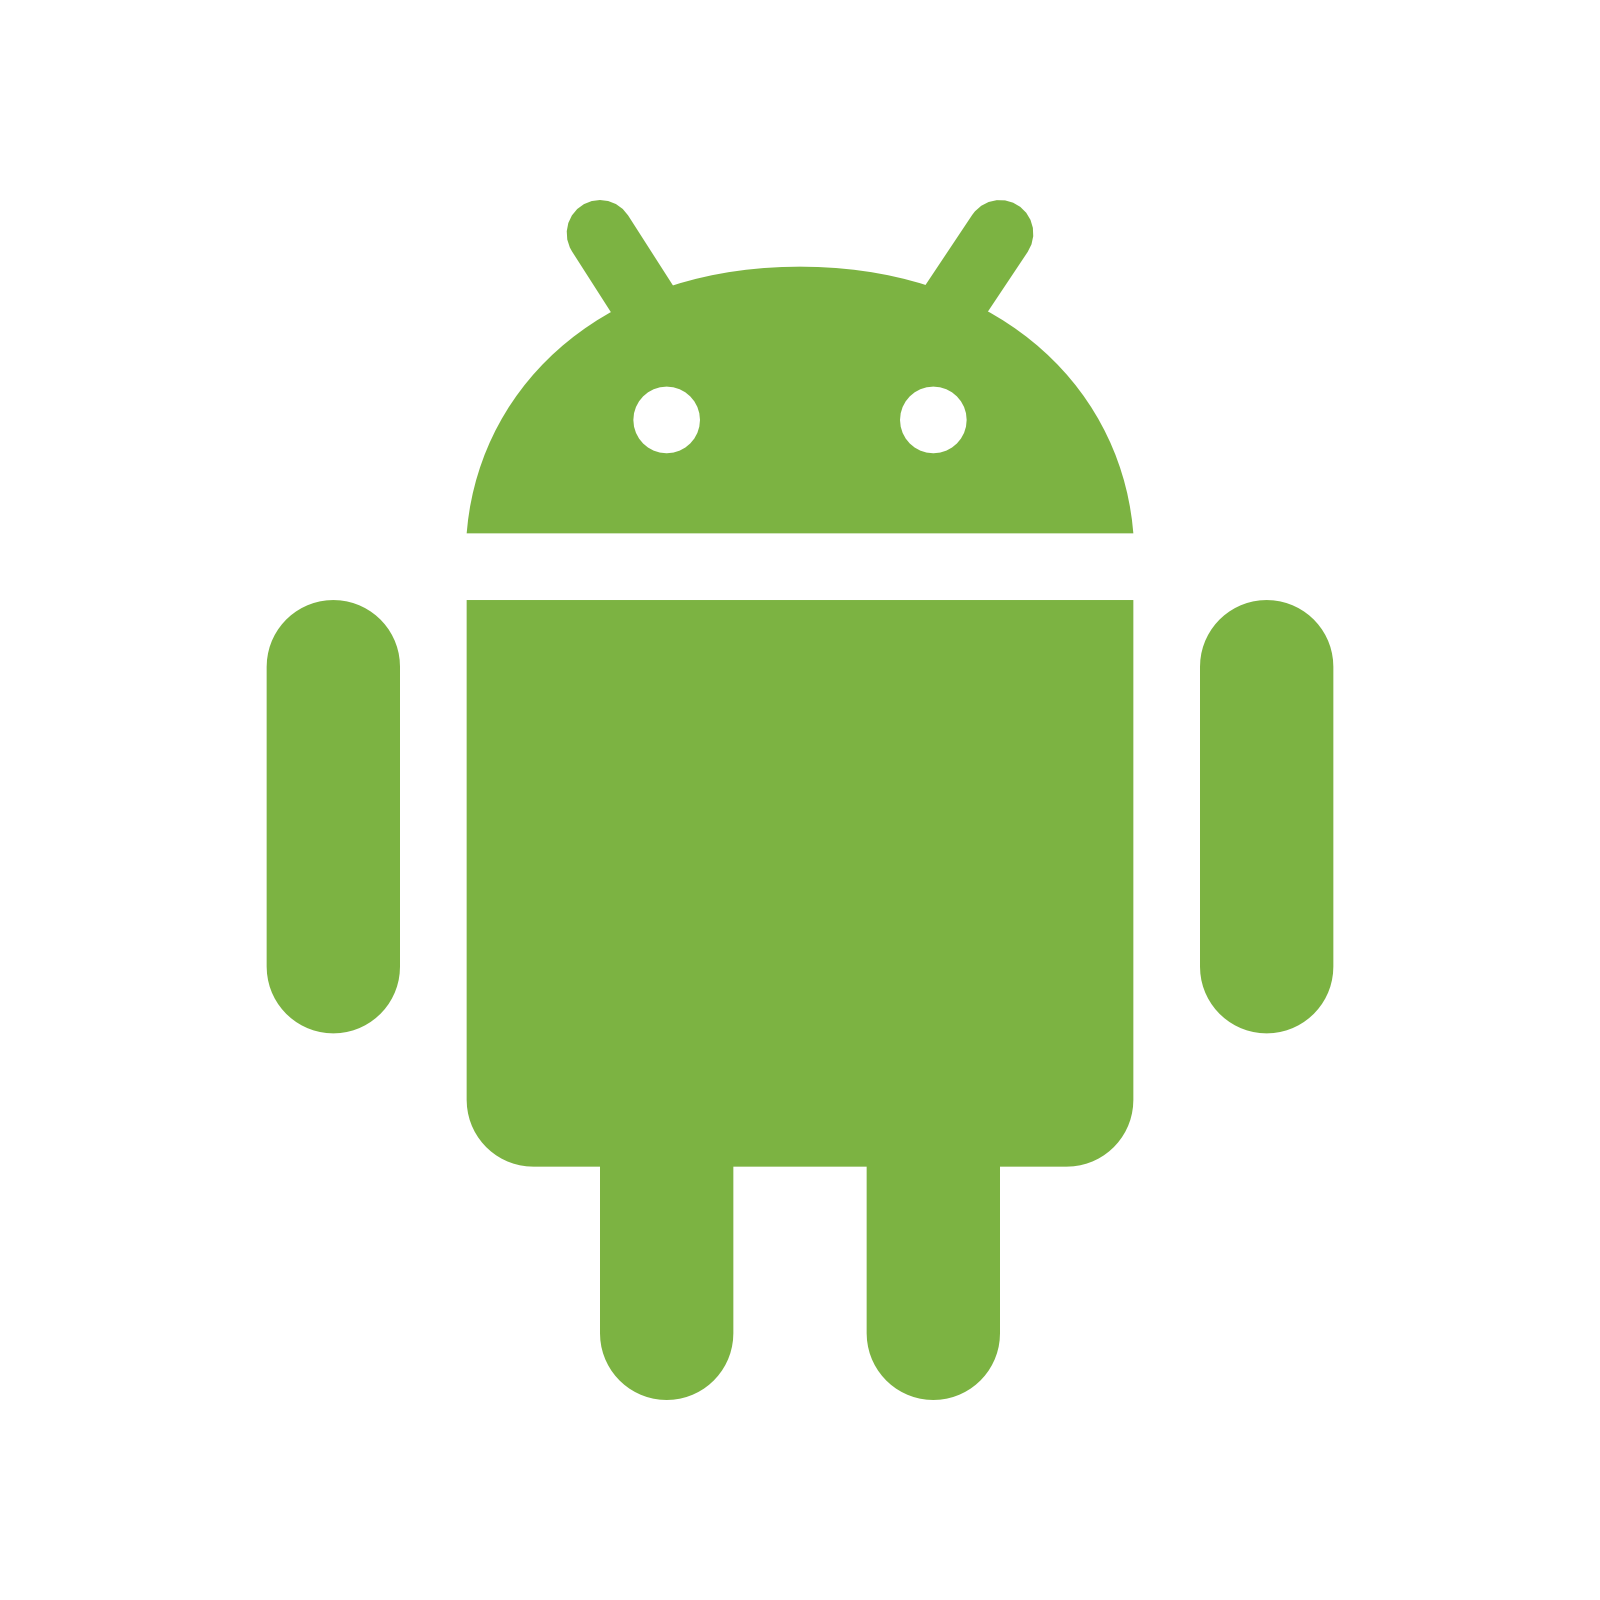 Android PNG Transparent Images, Pictures, Photos.